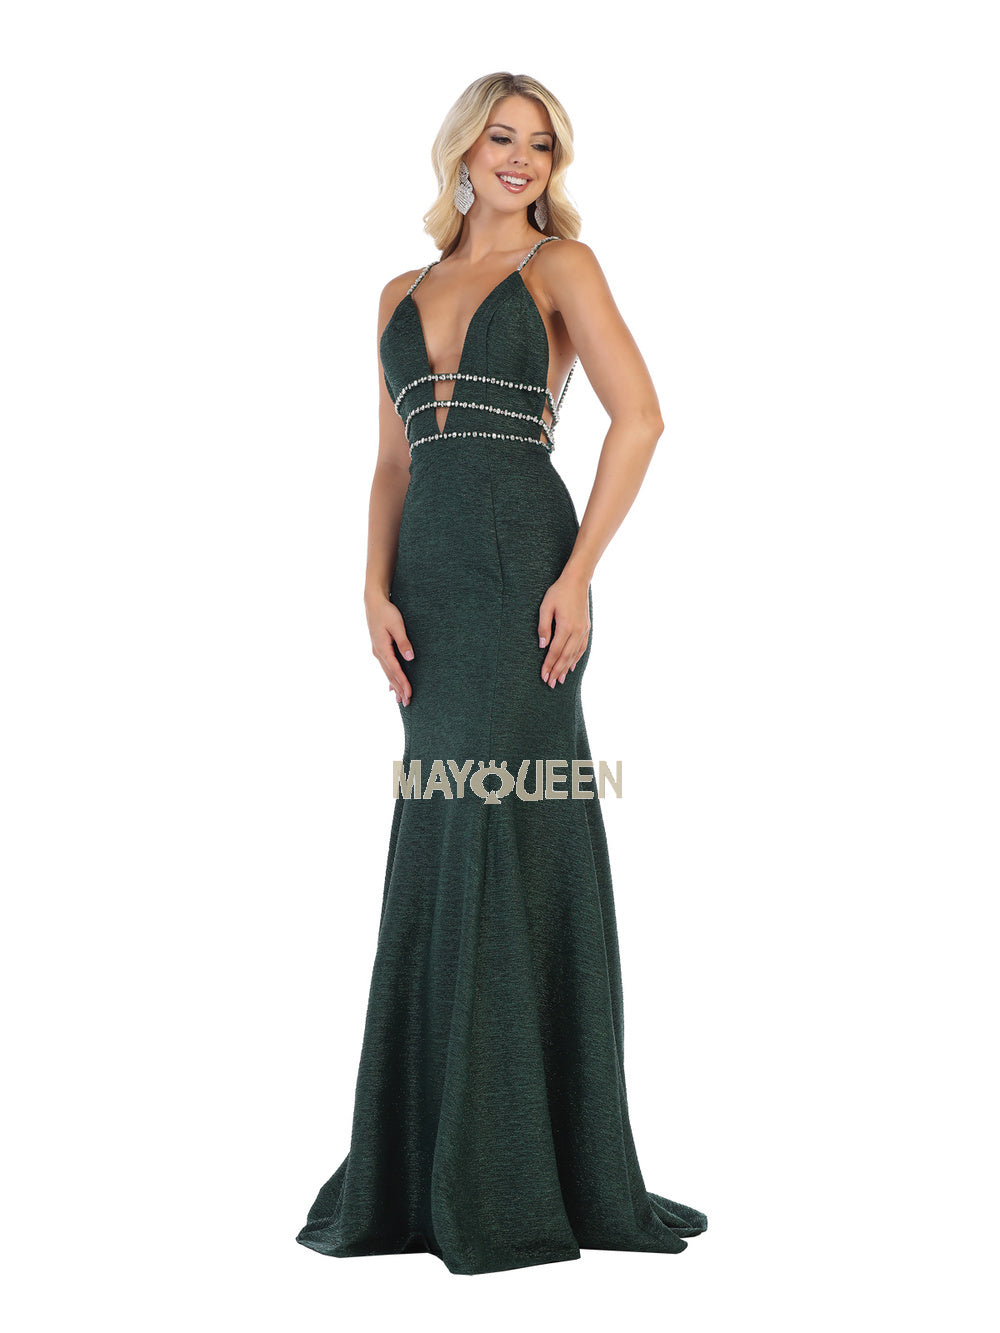 MQ 7638 - Deep-V Fit & Flare with Beaded Belt and Open Back - Diggz Prom